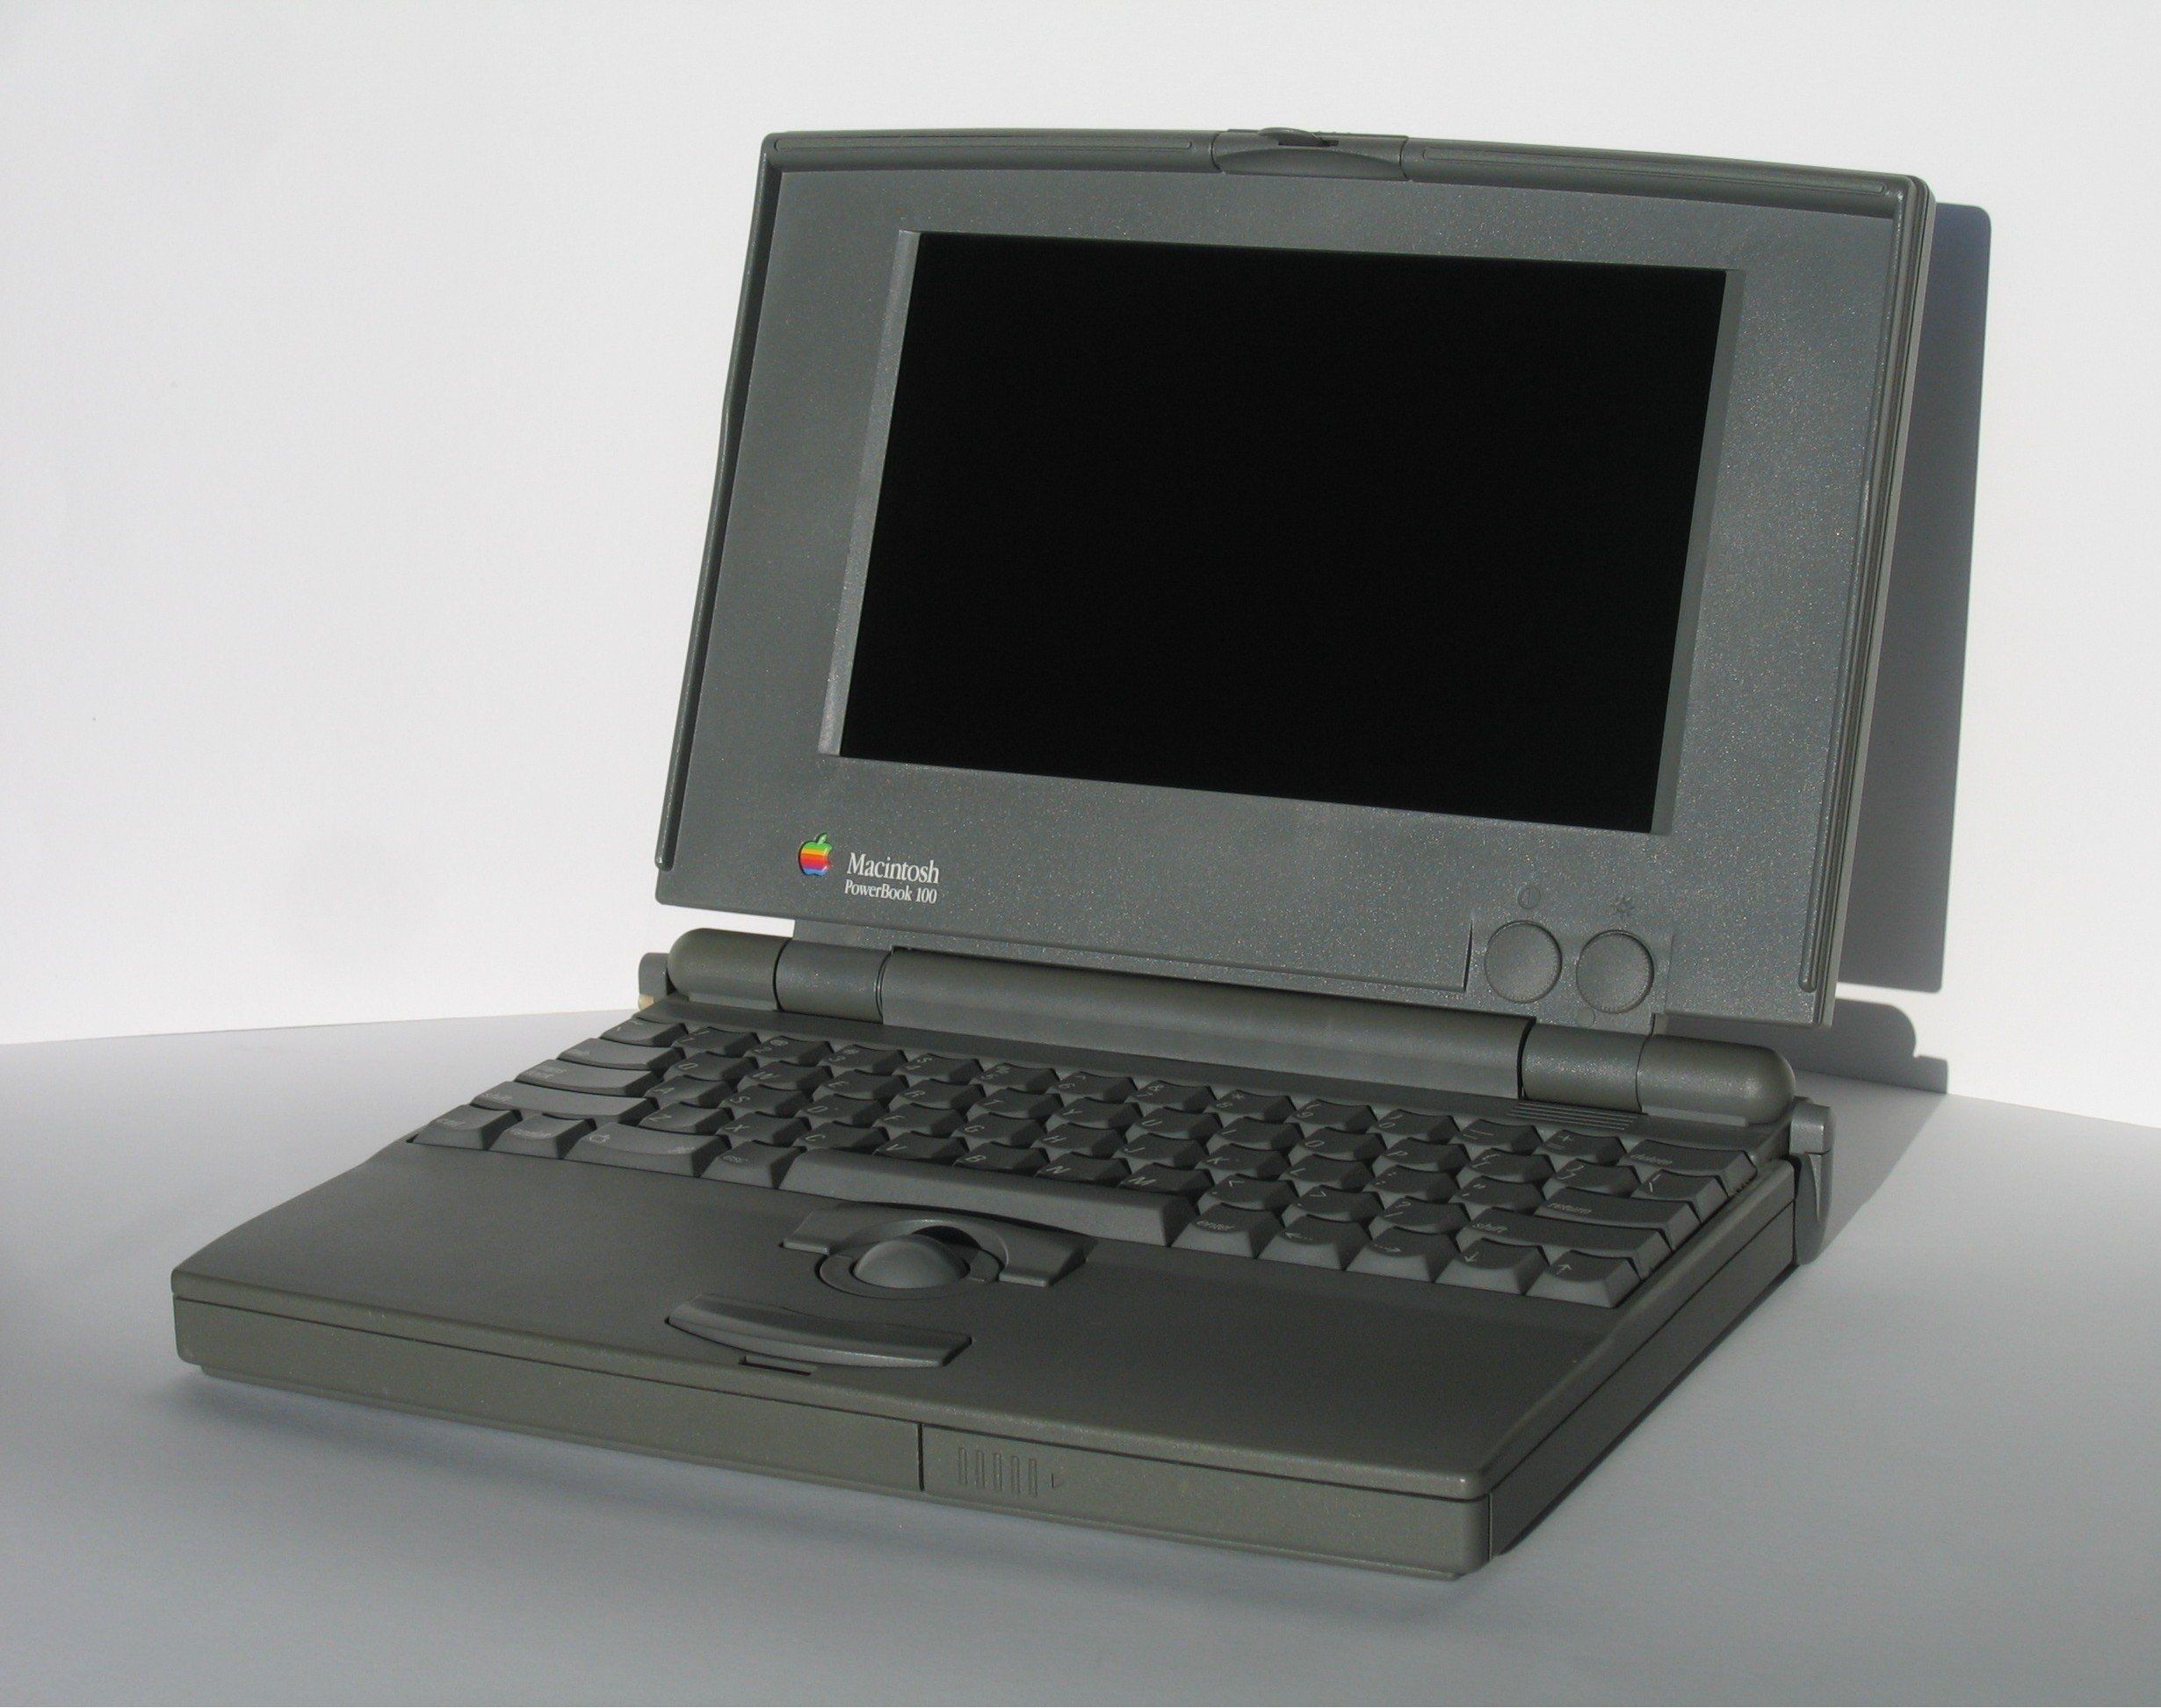 1991 – PowerBook